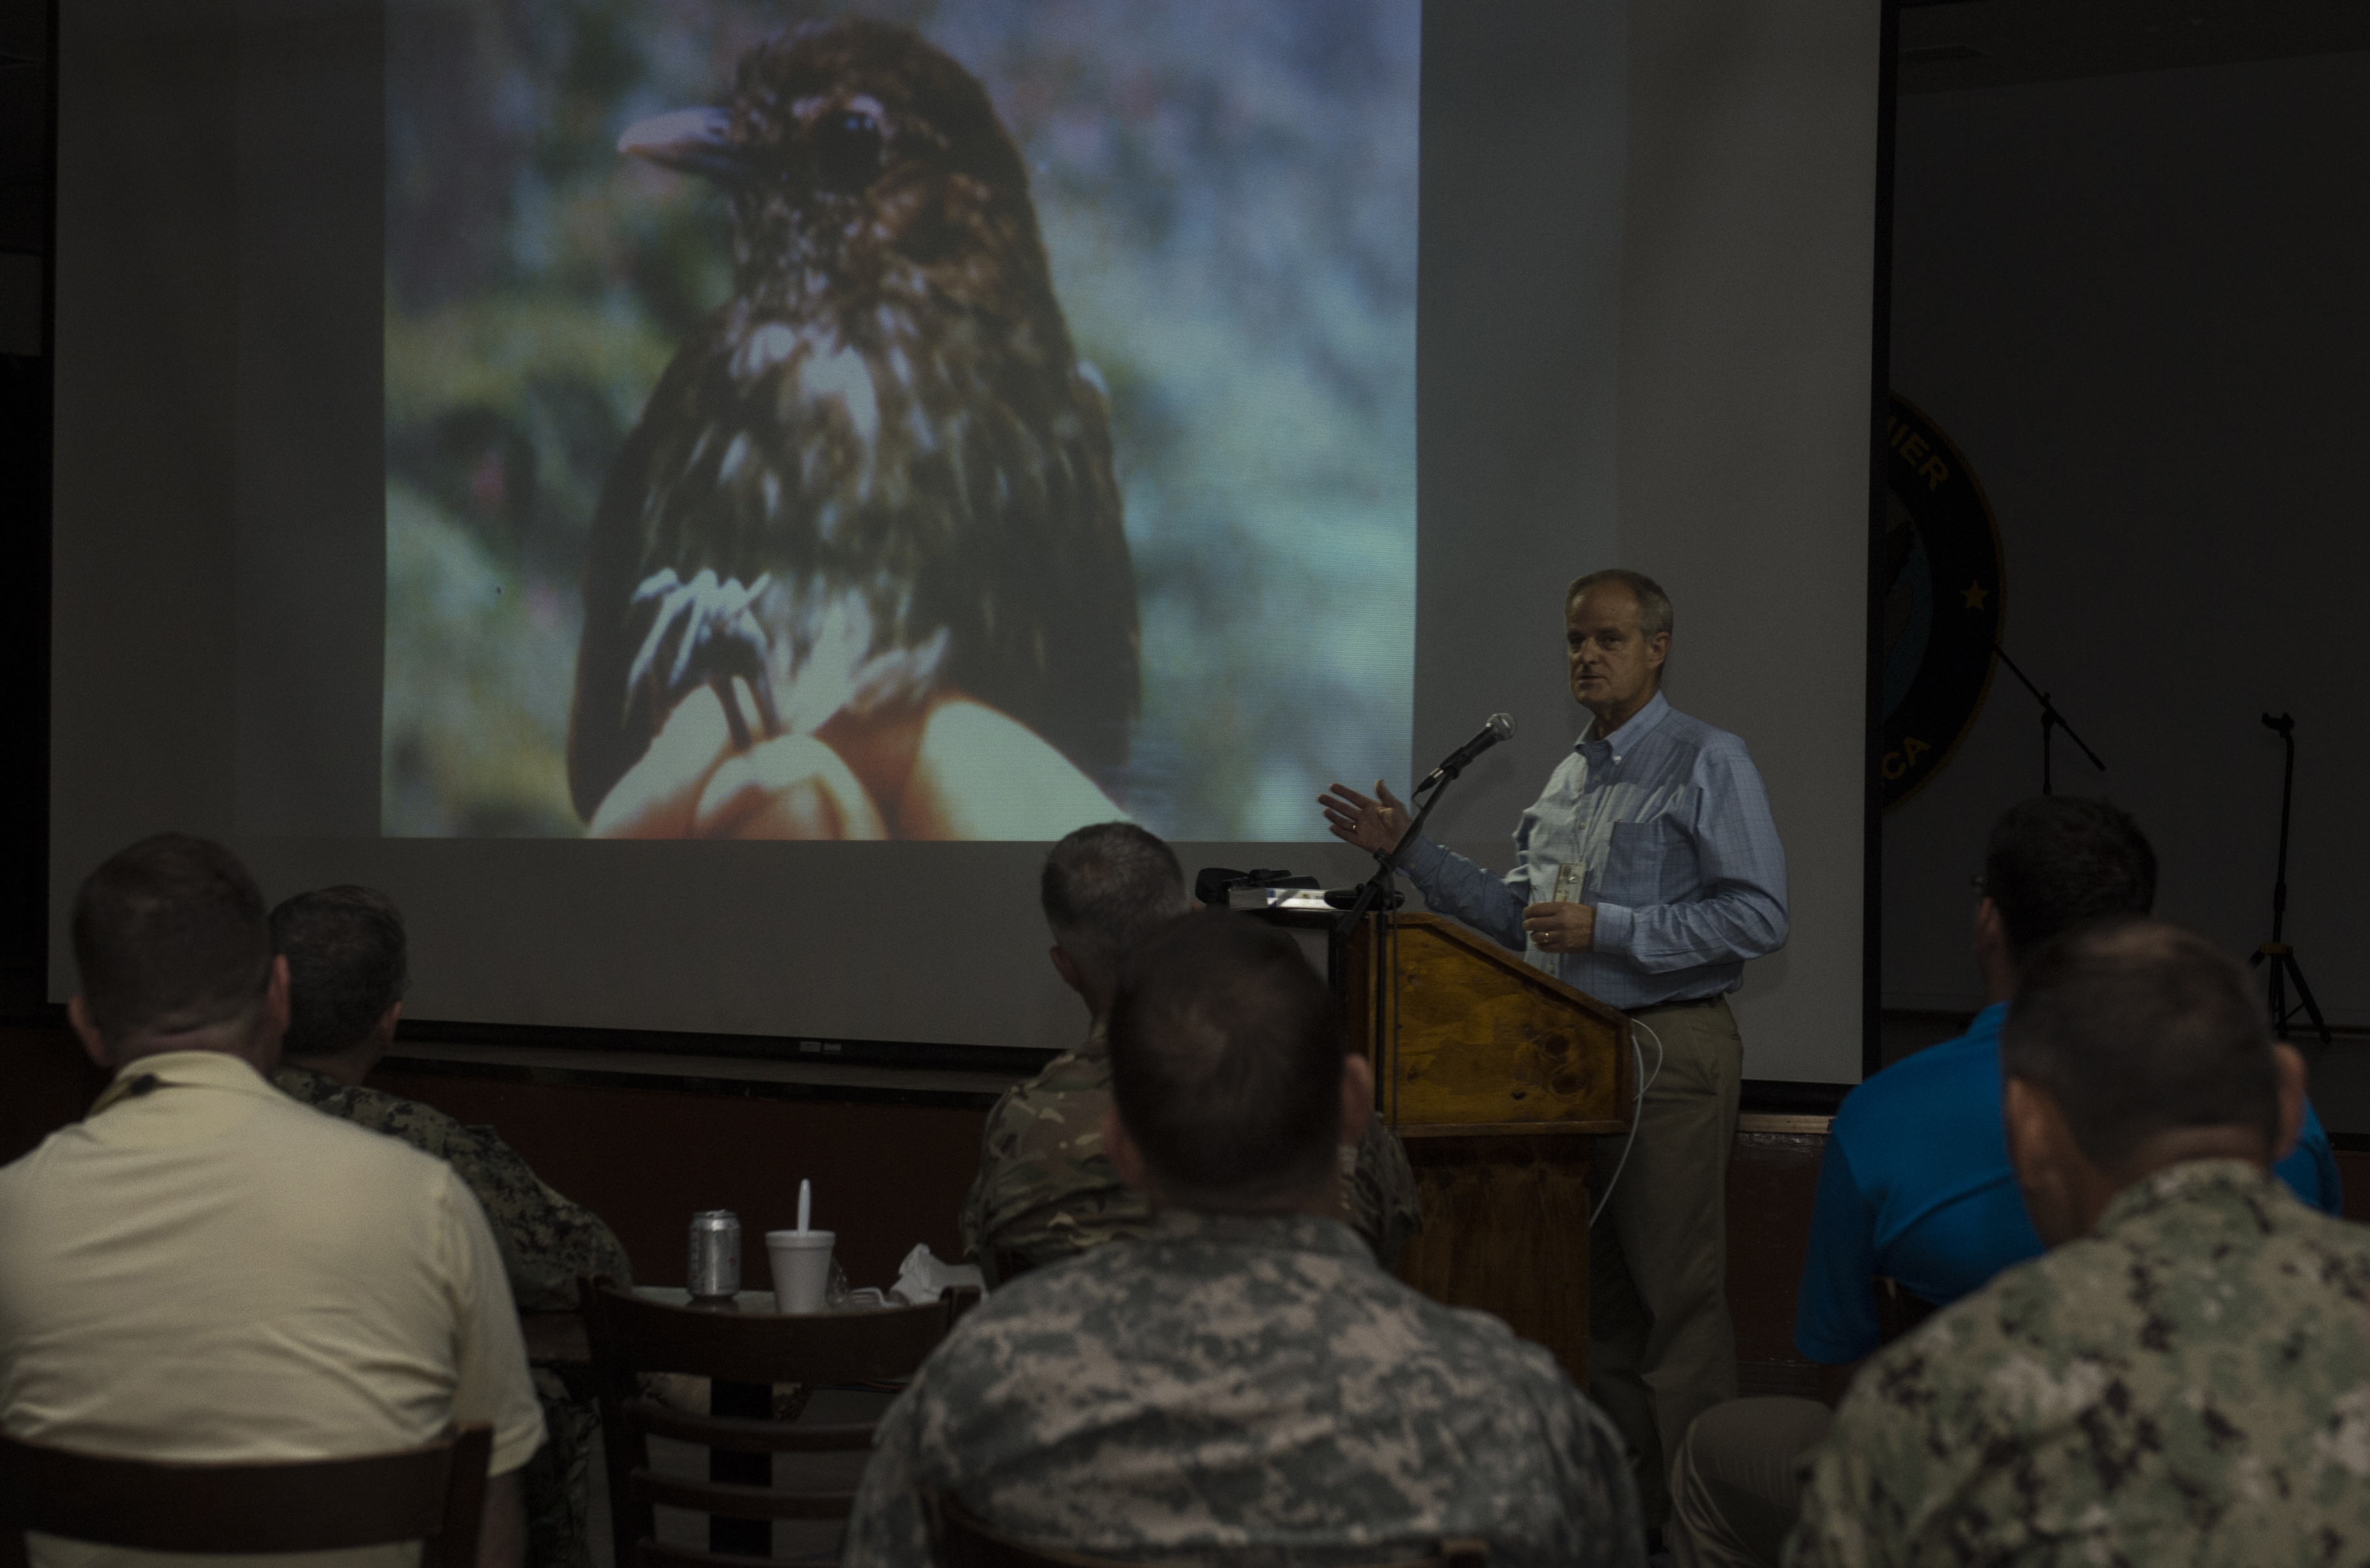 Peter Kaestner, Combined Joint Task Force-Horn of Africa political advisor, describes Grallaria Kaestneri during a presentation Oct. 9, 2015, at Camp Lemonnier, Djibouti. While living in Colombia, Kaestner heard a birdcall that was unknown. He tracked and located the bird, which was an undiscovered species. (U.S. Air Force photo by Senior Airman Peter Thompson/Released)